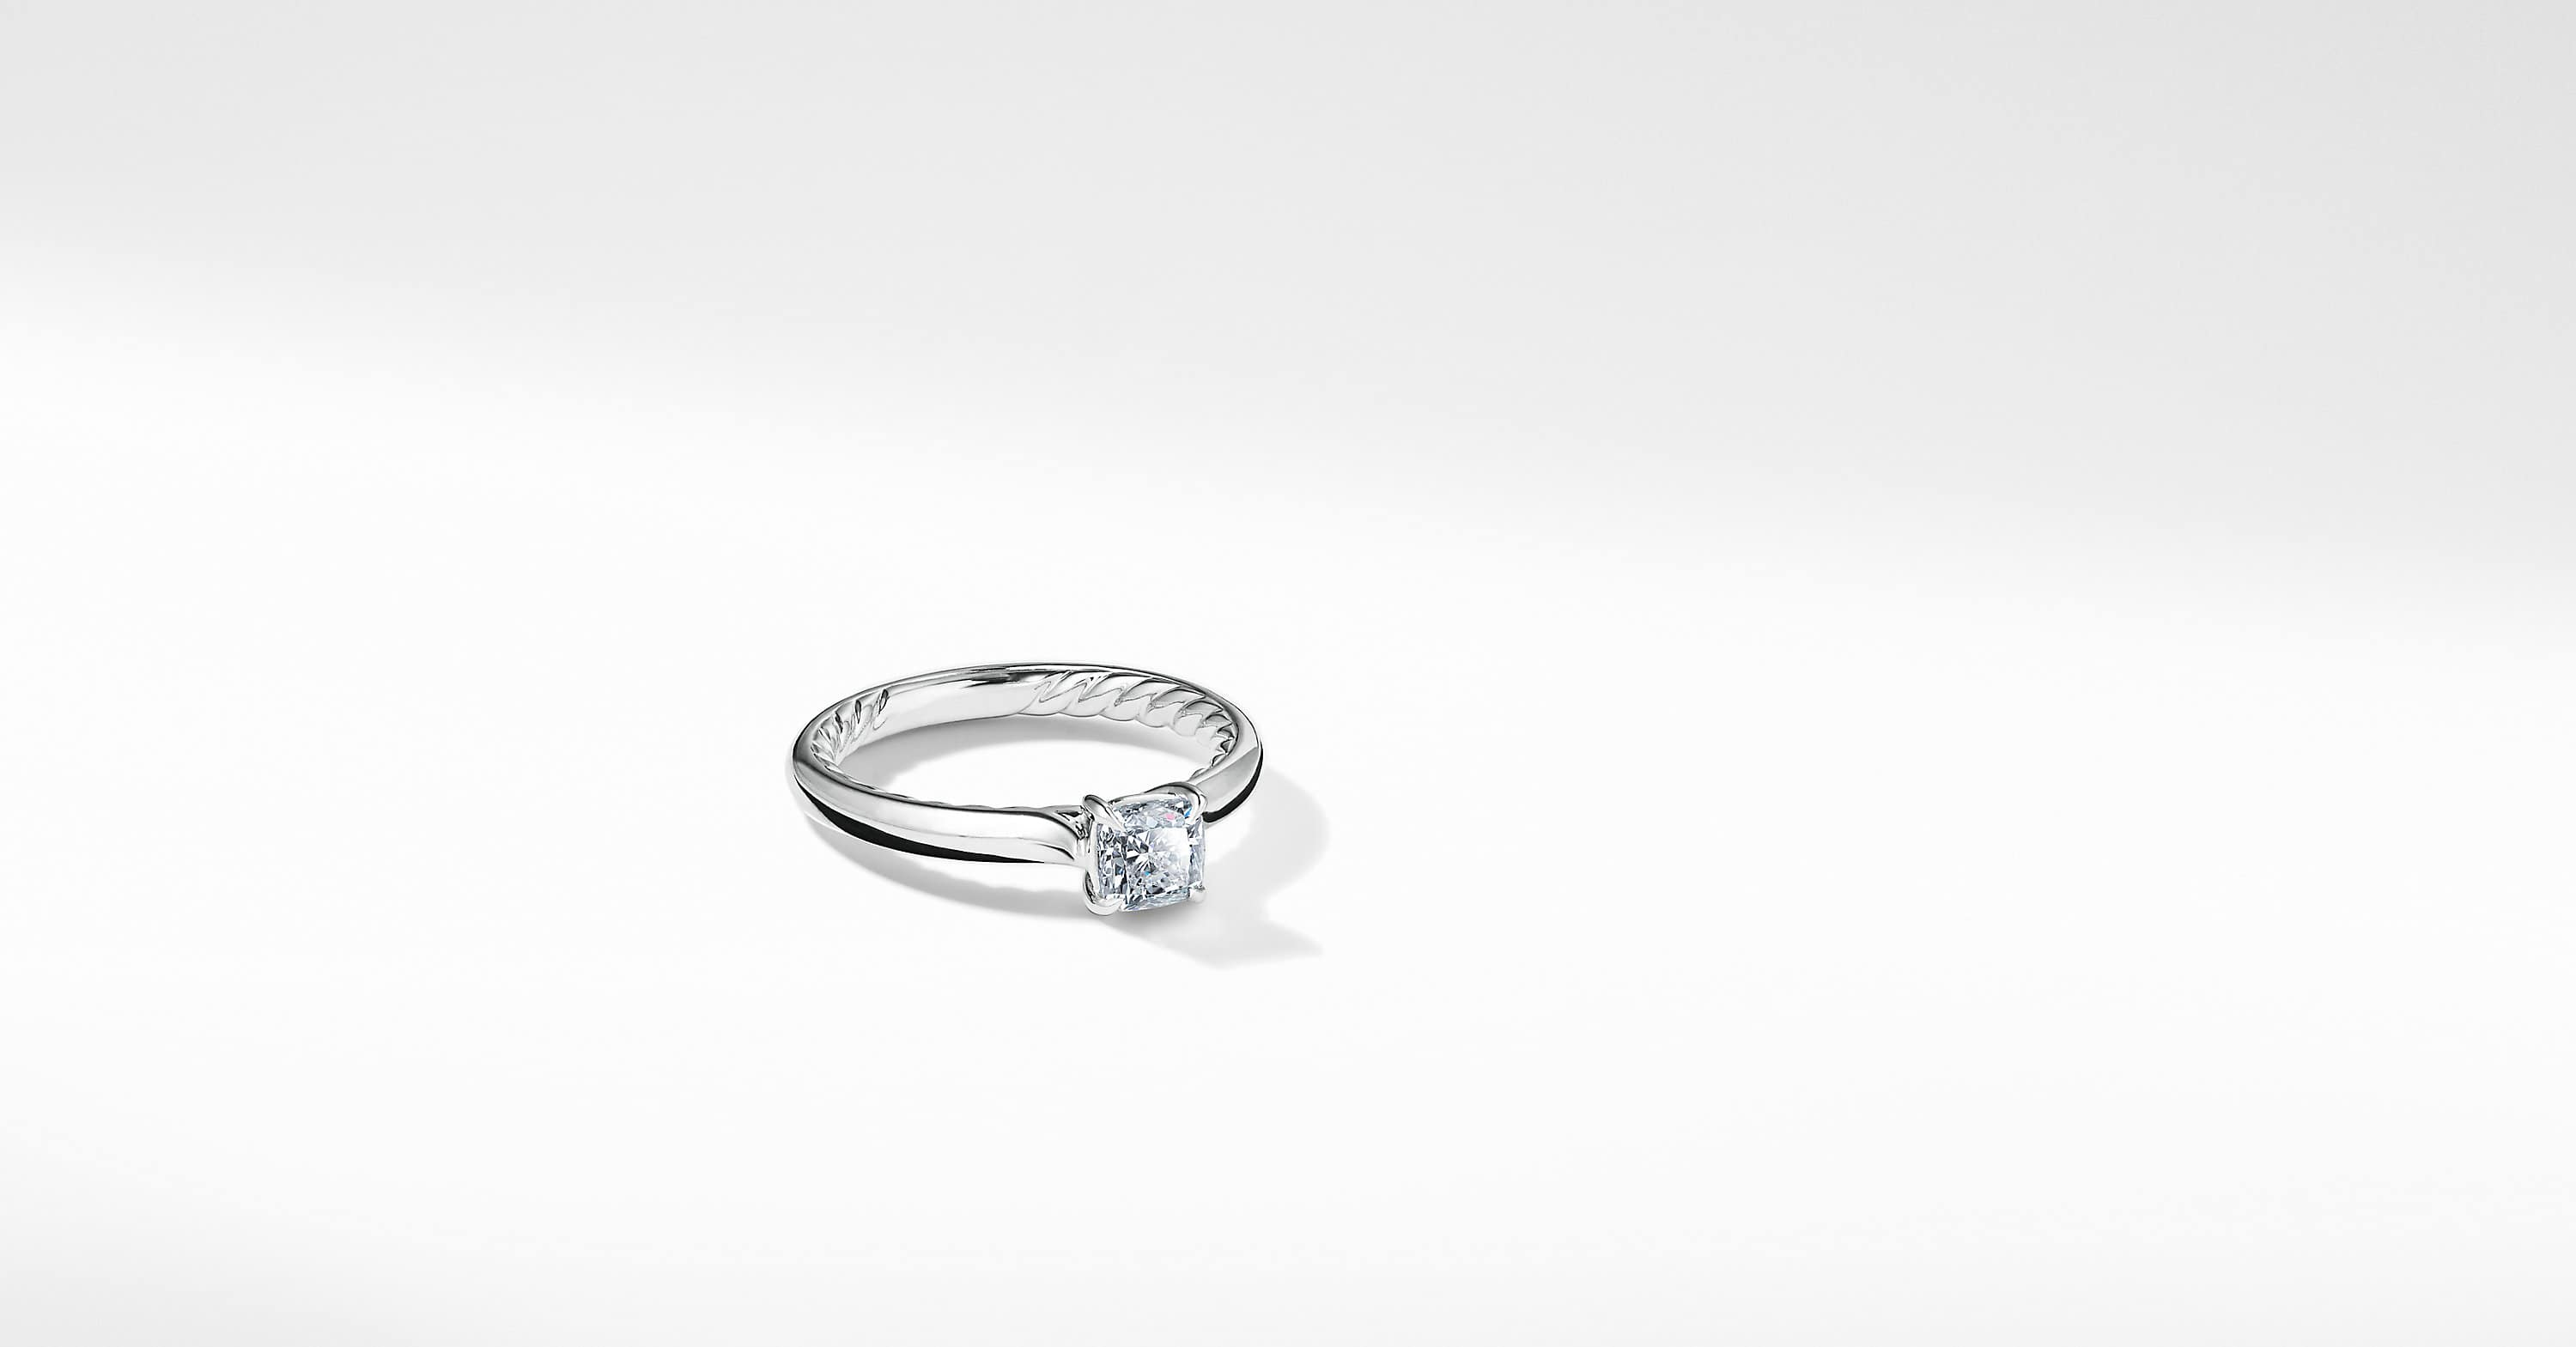 DY Eden Petite Engagement Ring in Platinum, Cushion